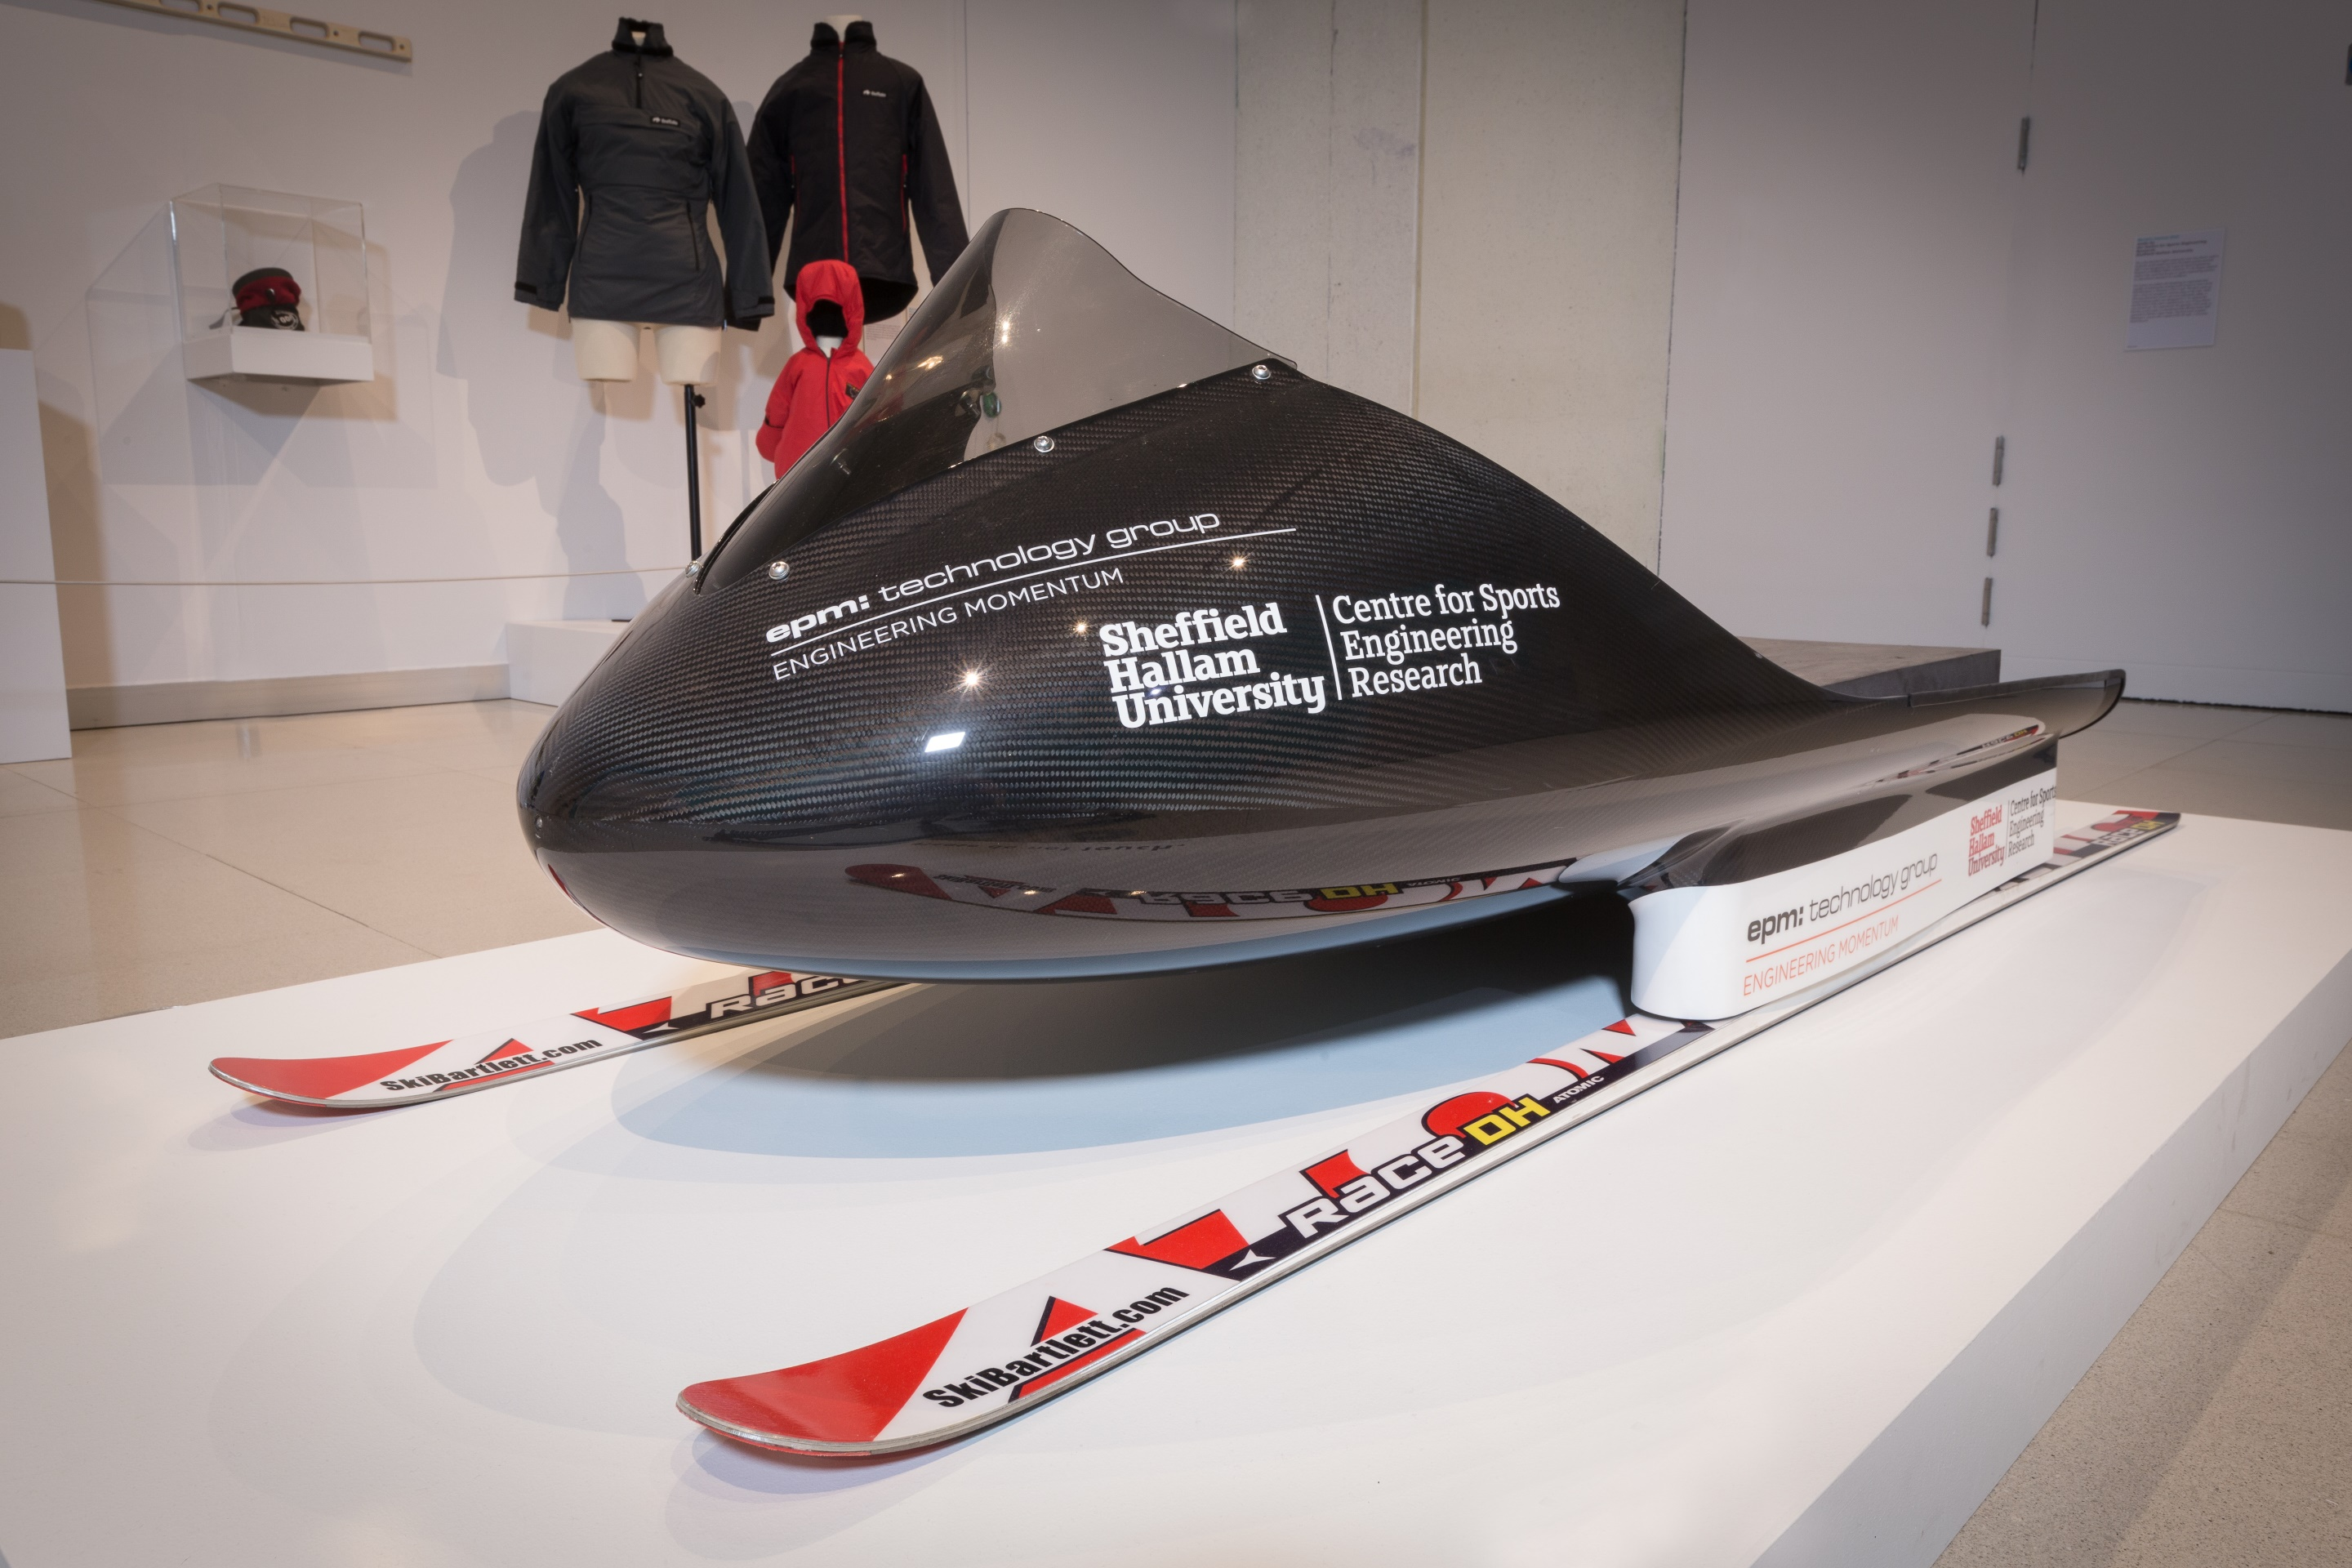 World's fastest sled made by Centre for Sports Engineering Research, Sheffield Hallam University